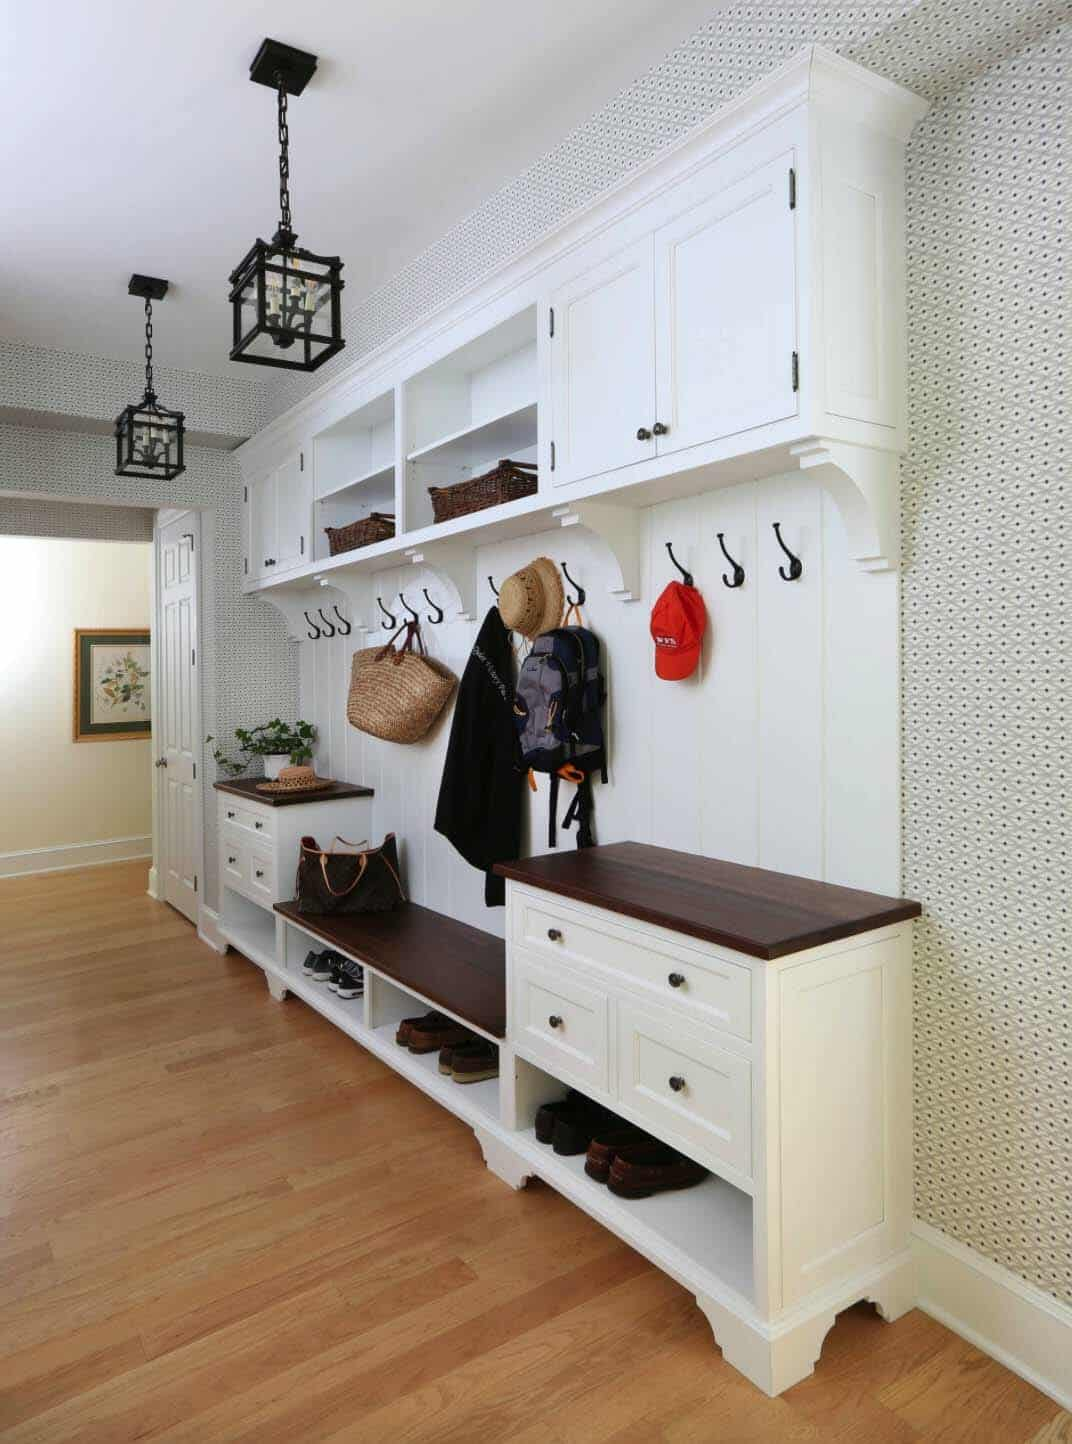 Outstanding 30 Fantastic Mudroom Ideas Offering Amazing Storage Solutions Inzonedesignstudio Interior Chair Design Inzonedesignstudiocom